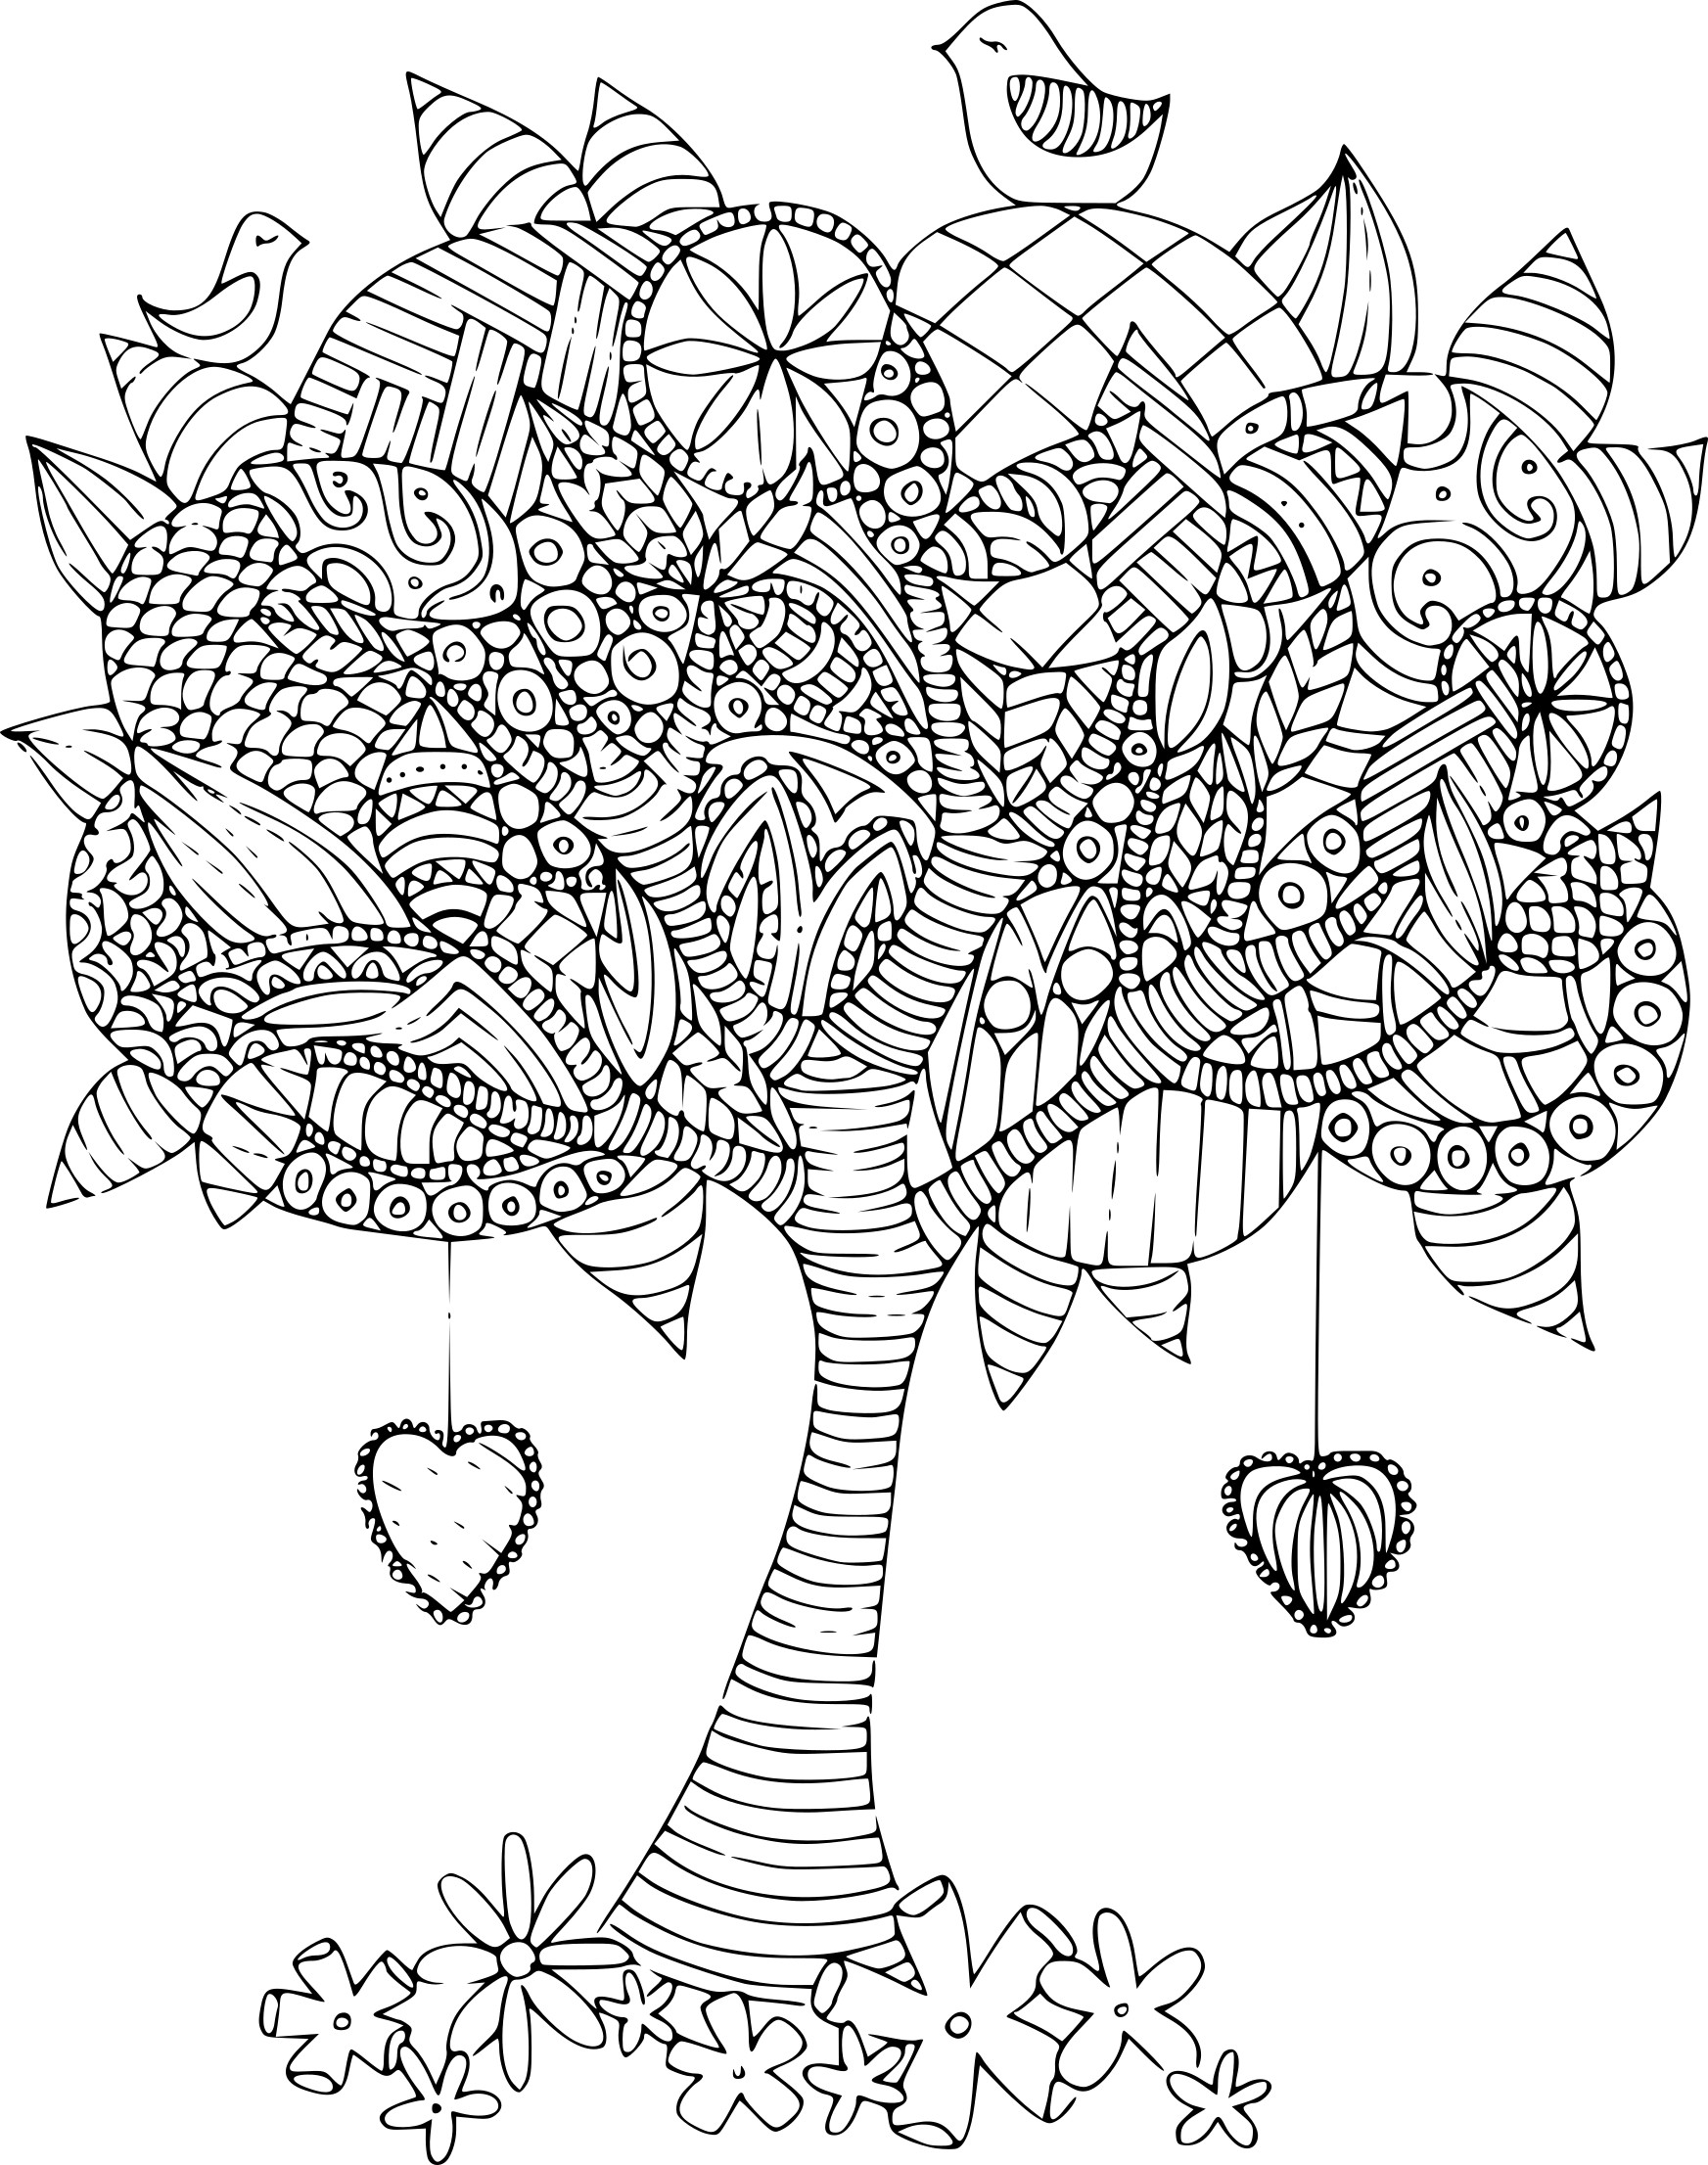 Coloriage anti stress arbre - Anti coloriage ...